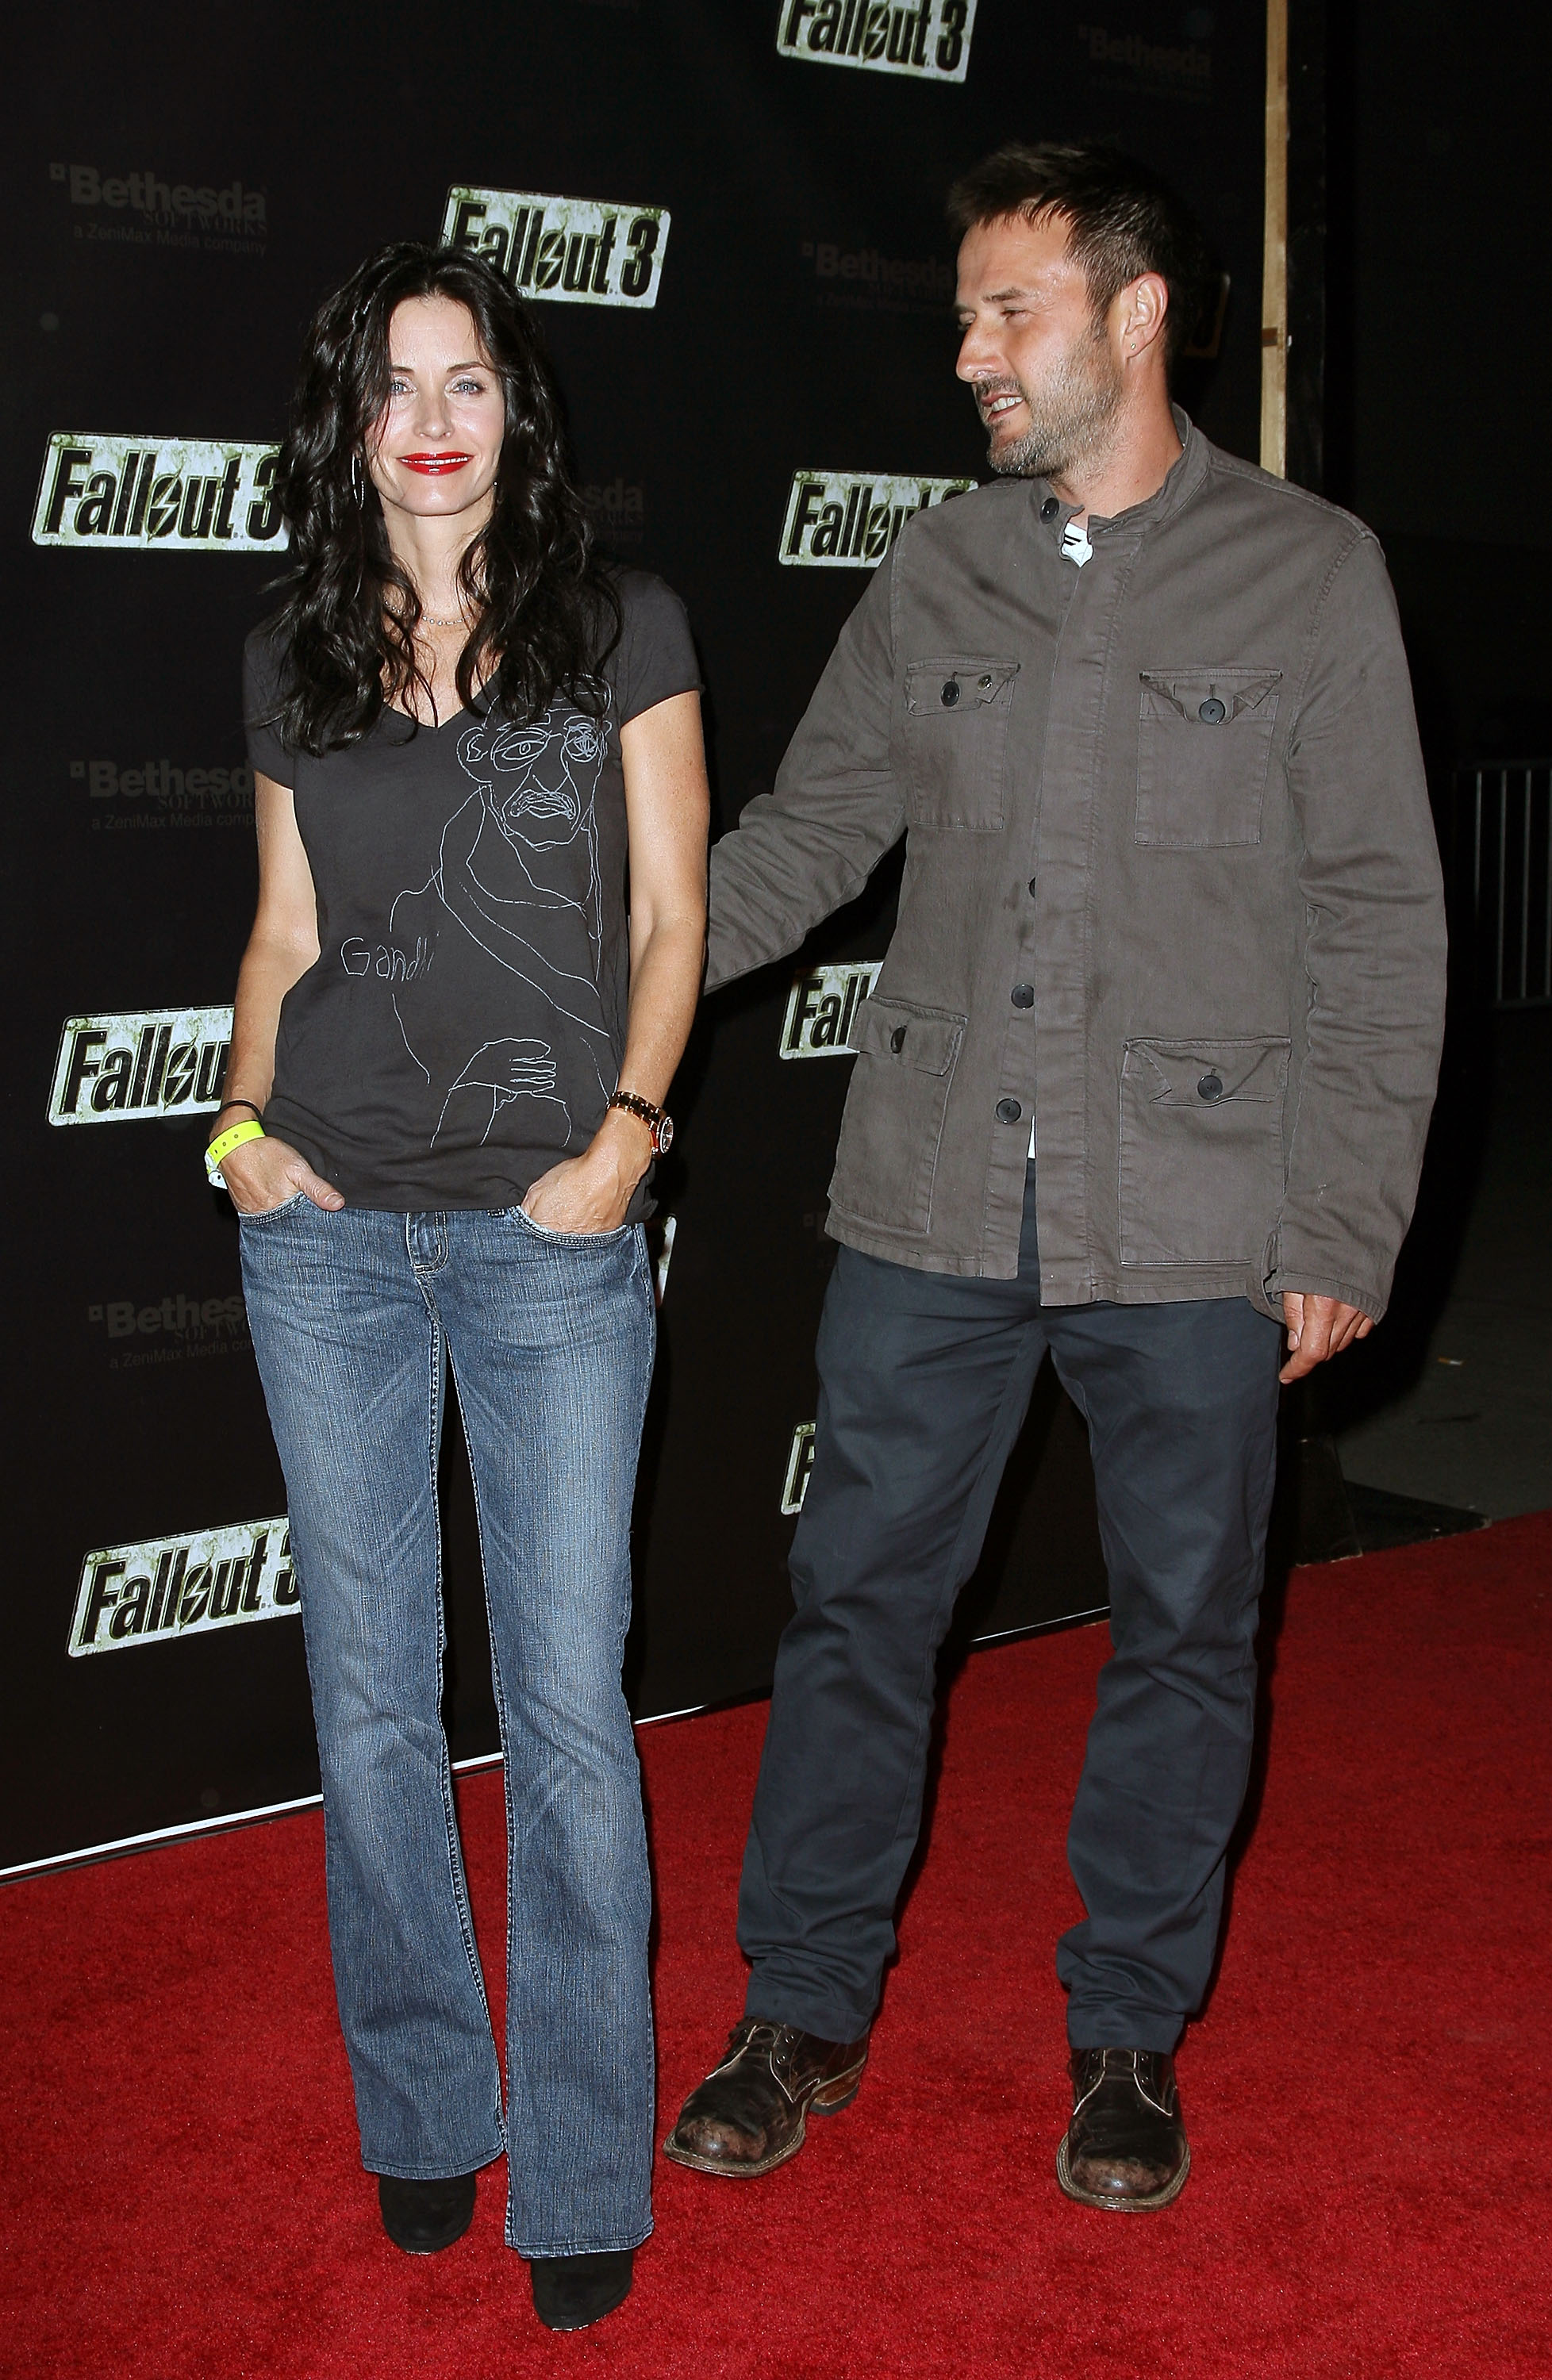 55132_Celebutopia-Courteney_Cox-Launch_Party_for_Fallout_3_videogame-06_122_13lo.jpg